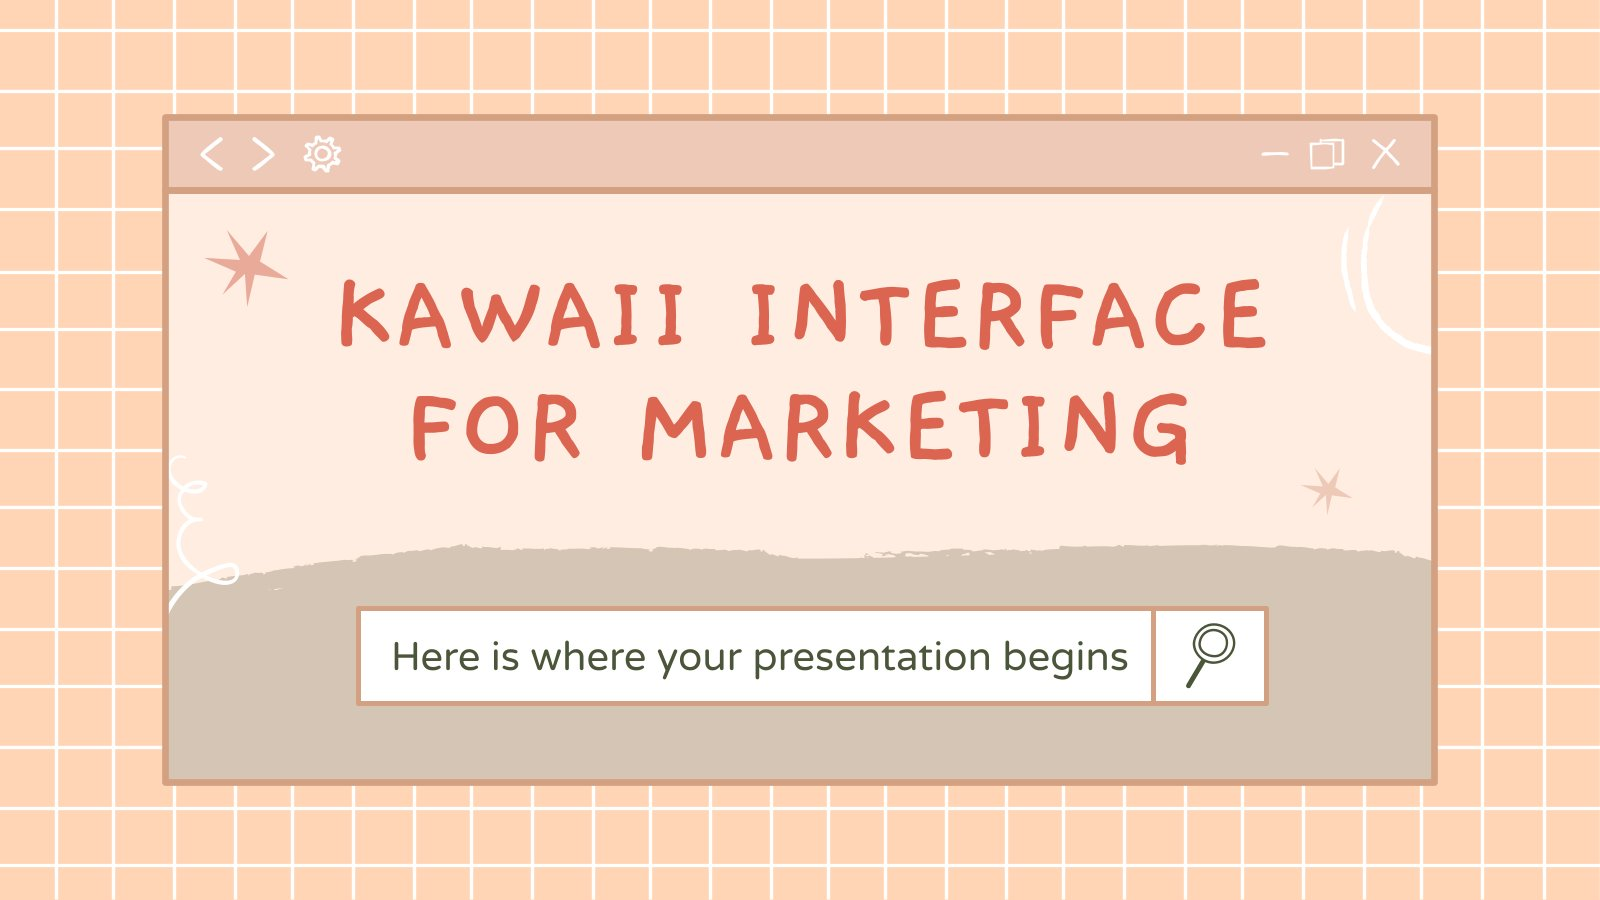 Kawaii Interface für Marketing Präsentationsvorlage